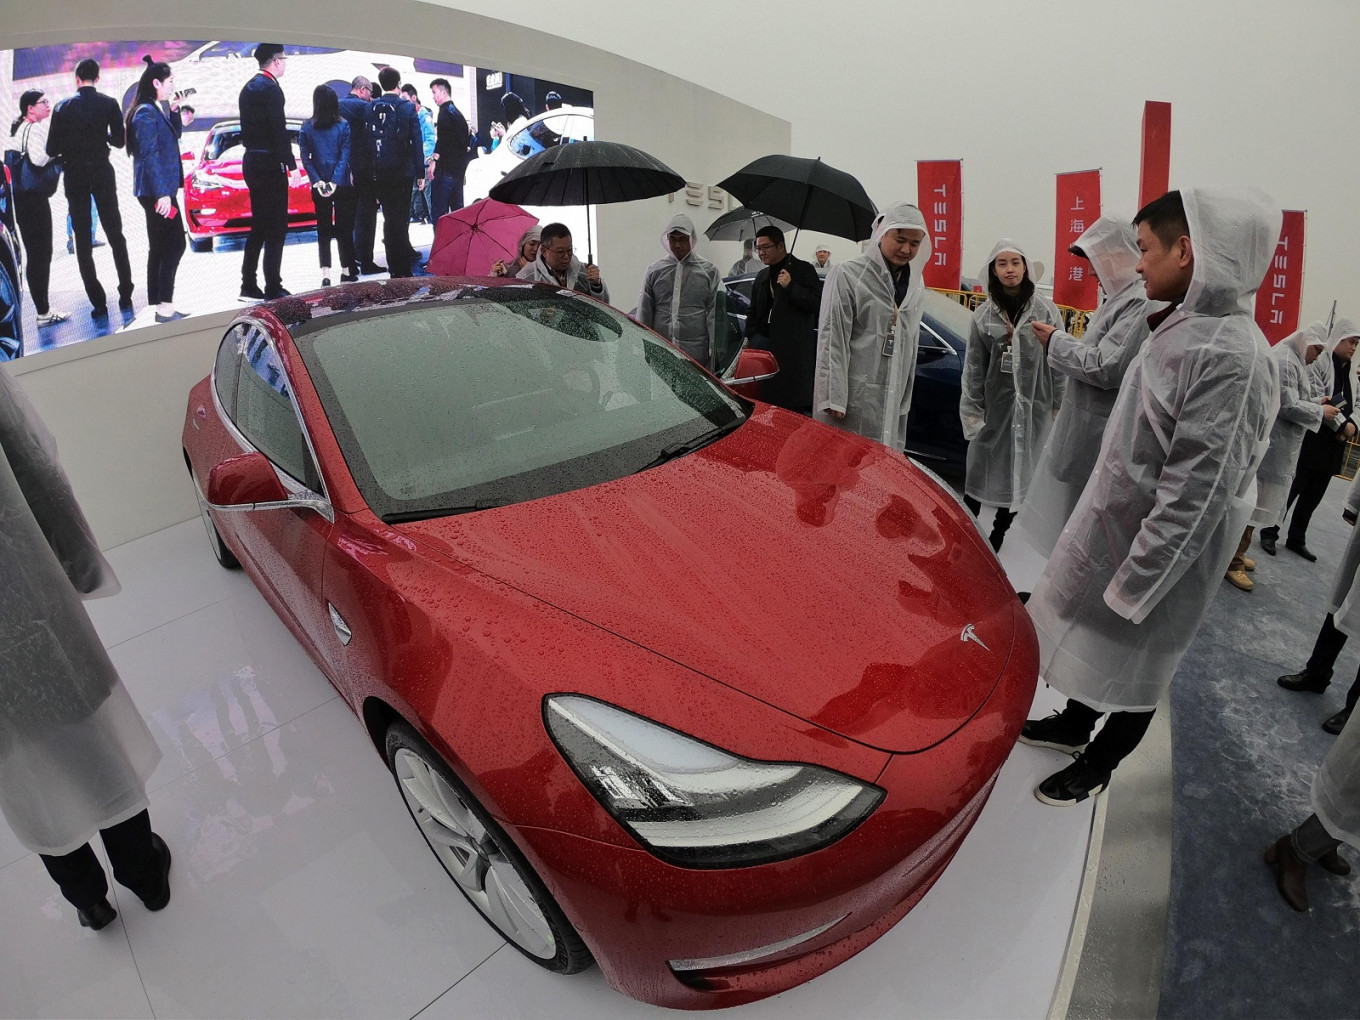 Tesla's 'mass market' $35k electric car ready to order, online